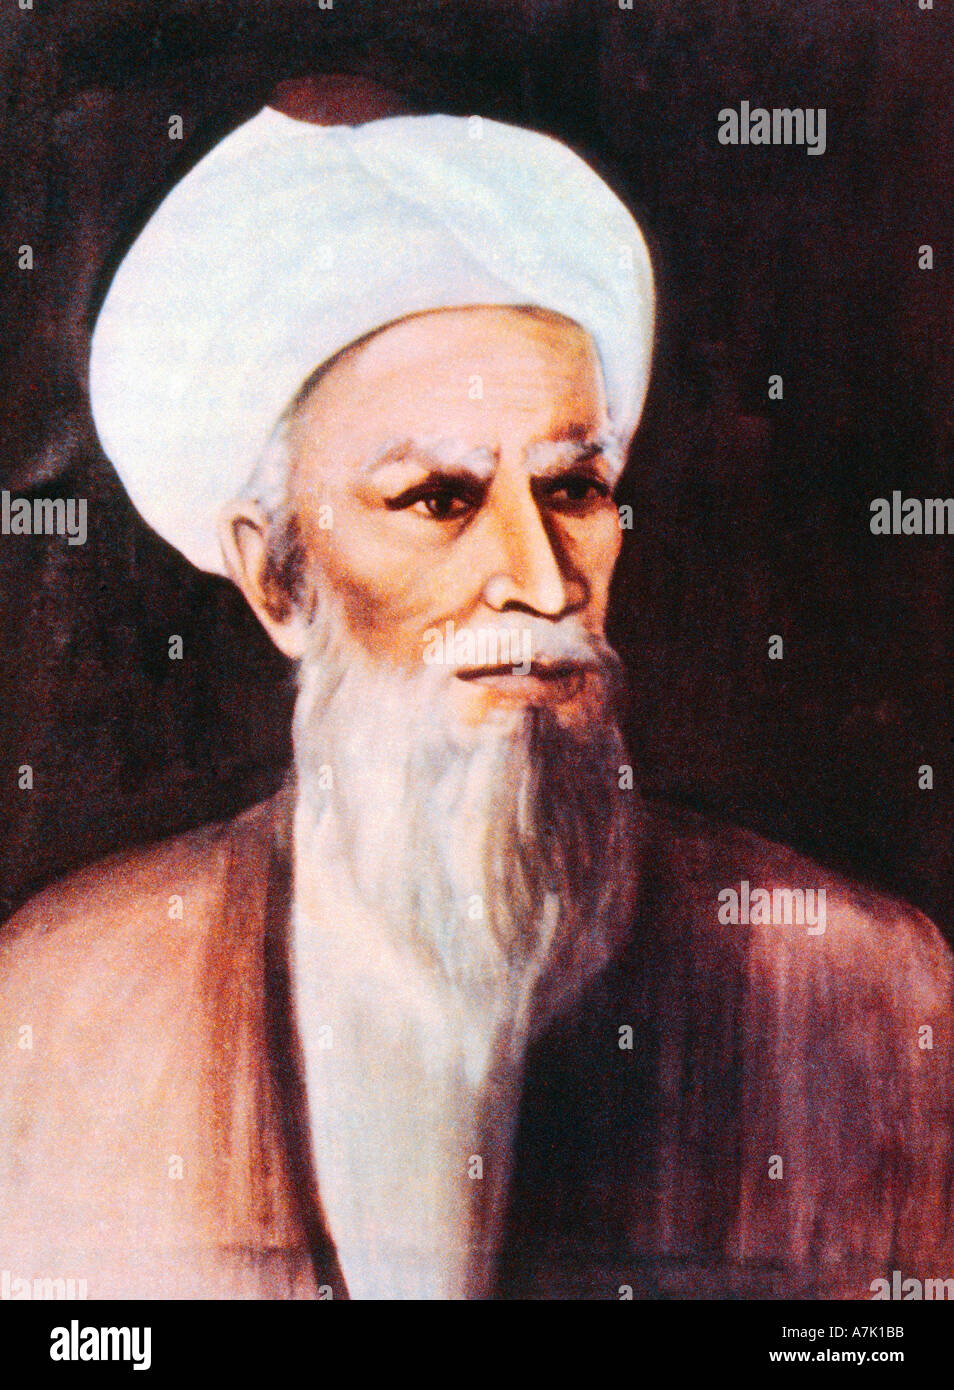 a biography of muhammad ibn zakariya al razi the persian polymath Al-hasan ibn mubarik al-ummi, to whom razi wrote two epistles with commentaries al-kayyal, a mutakallim: al-razi wrote a book on about his theory of the imam mansur ibn talhah, being the author of the book being, which was criticized by al-razi muhammad ibn al-laith al-rasa'ili whose opposition against alchemists was disputed by al-razi.